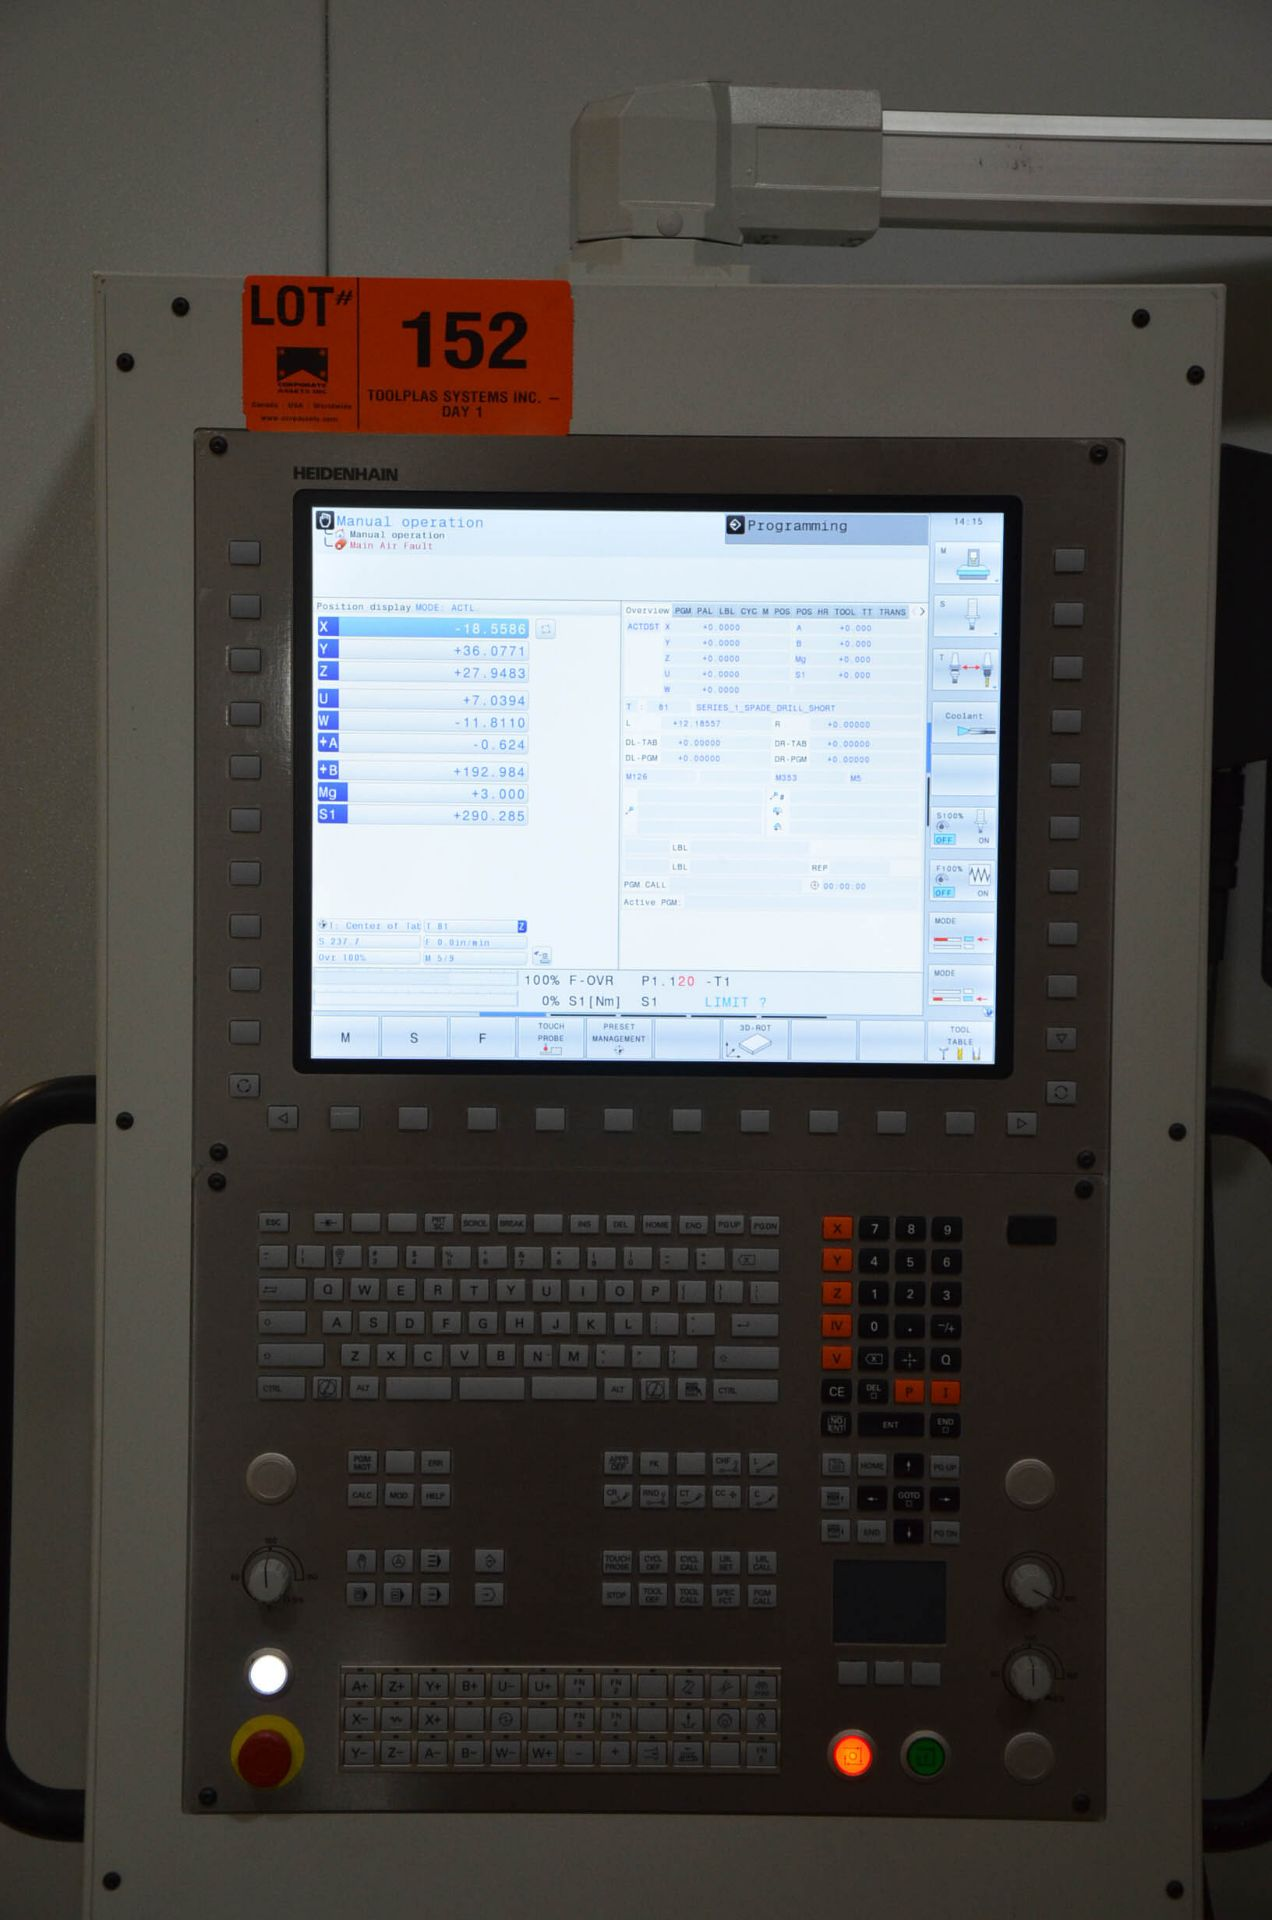 UNISIG (2020) USC-M38 5-AXIS COMBINATION CNC GUN DRILLING AND MILLING MACHINE WITH HEIDENHAIN ITNC - Image 8 of 17